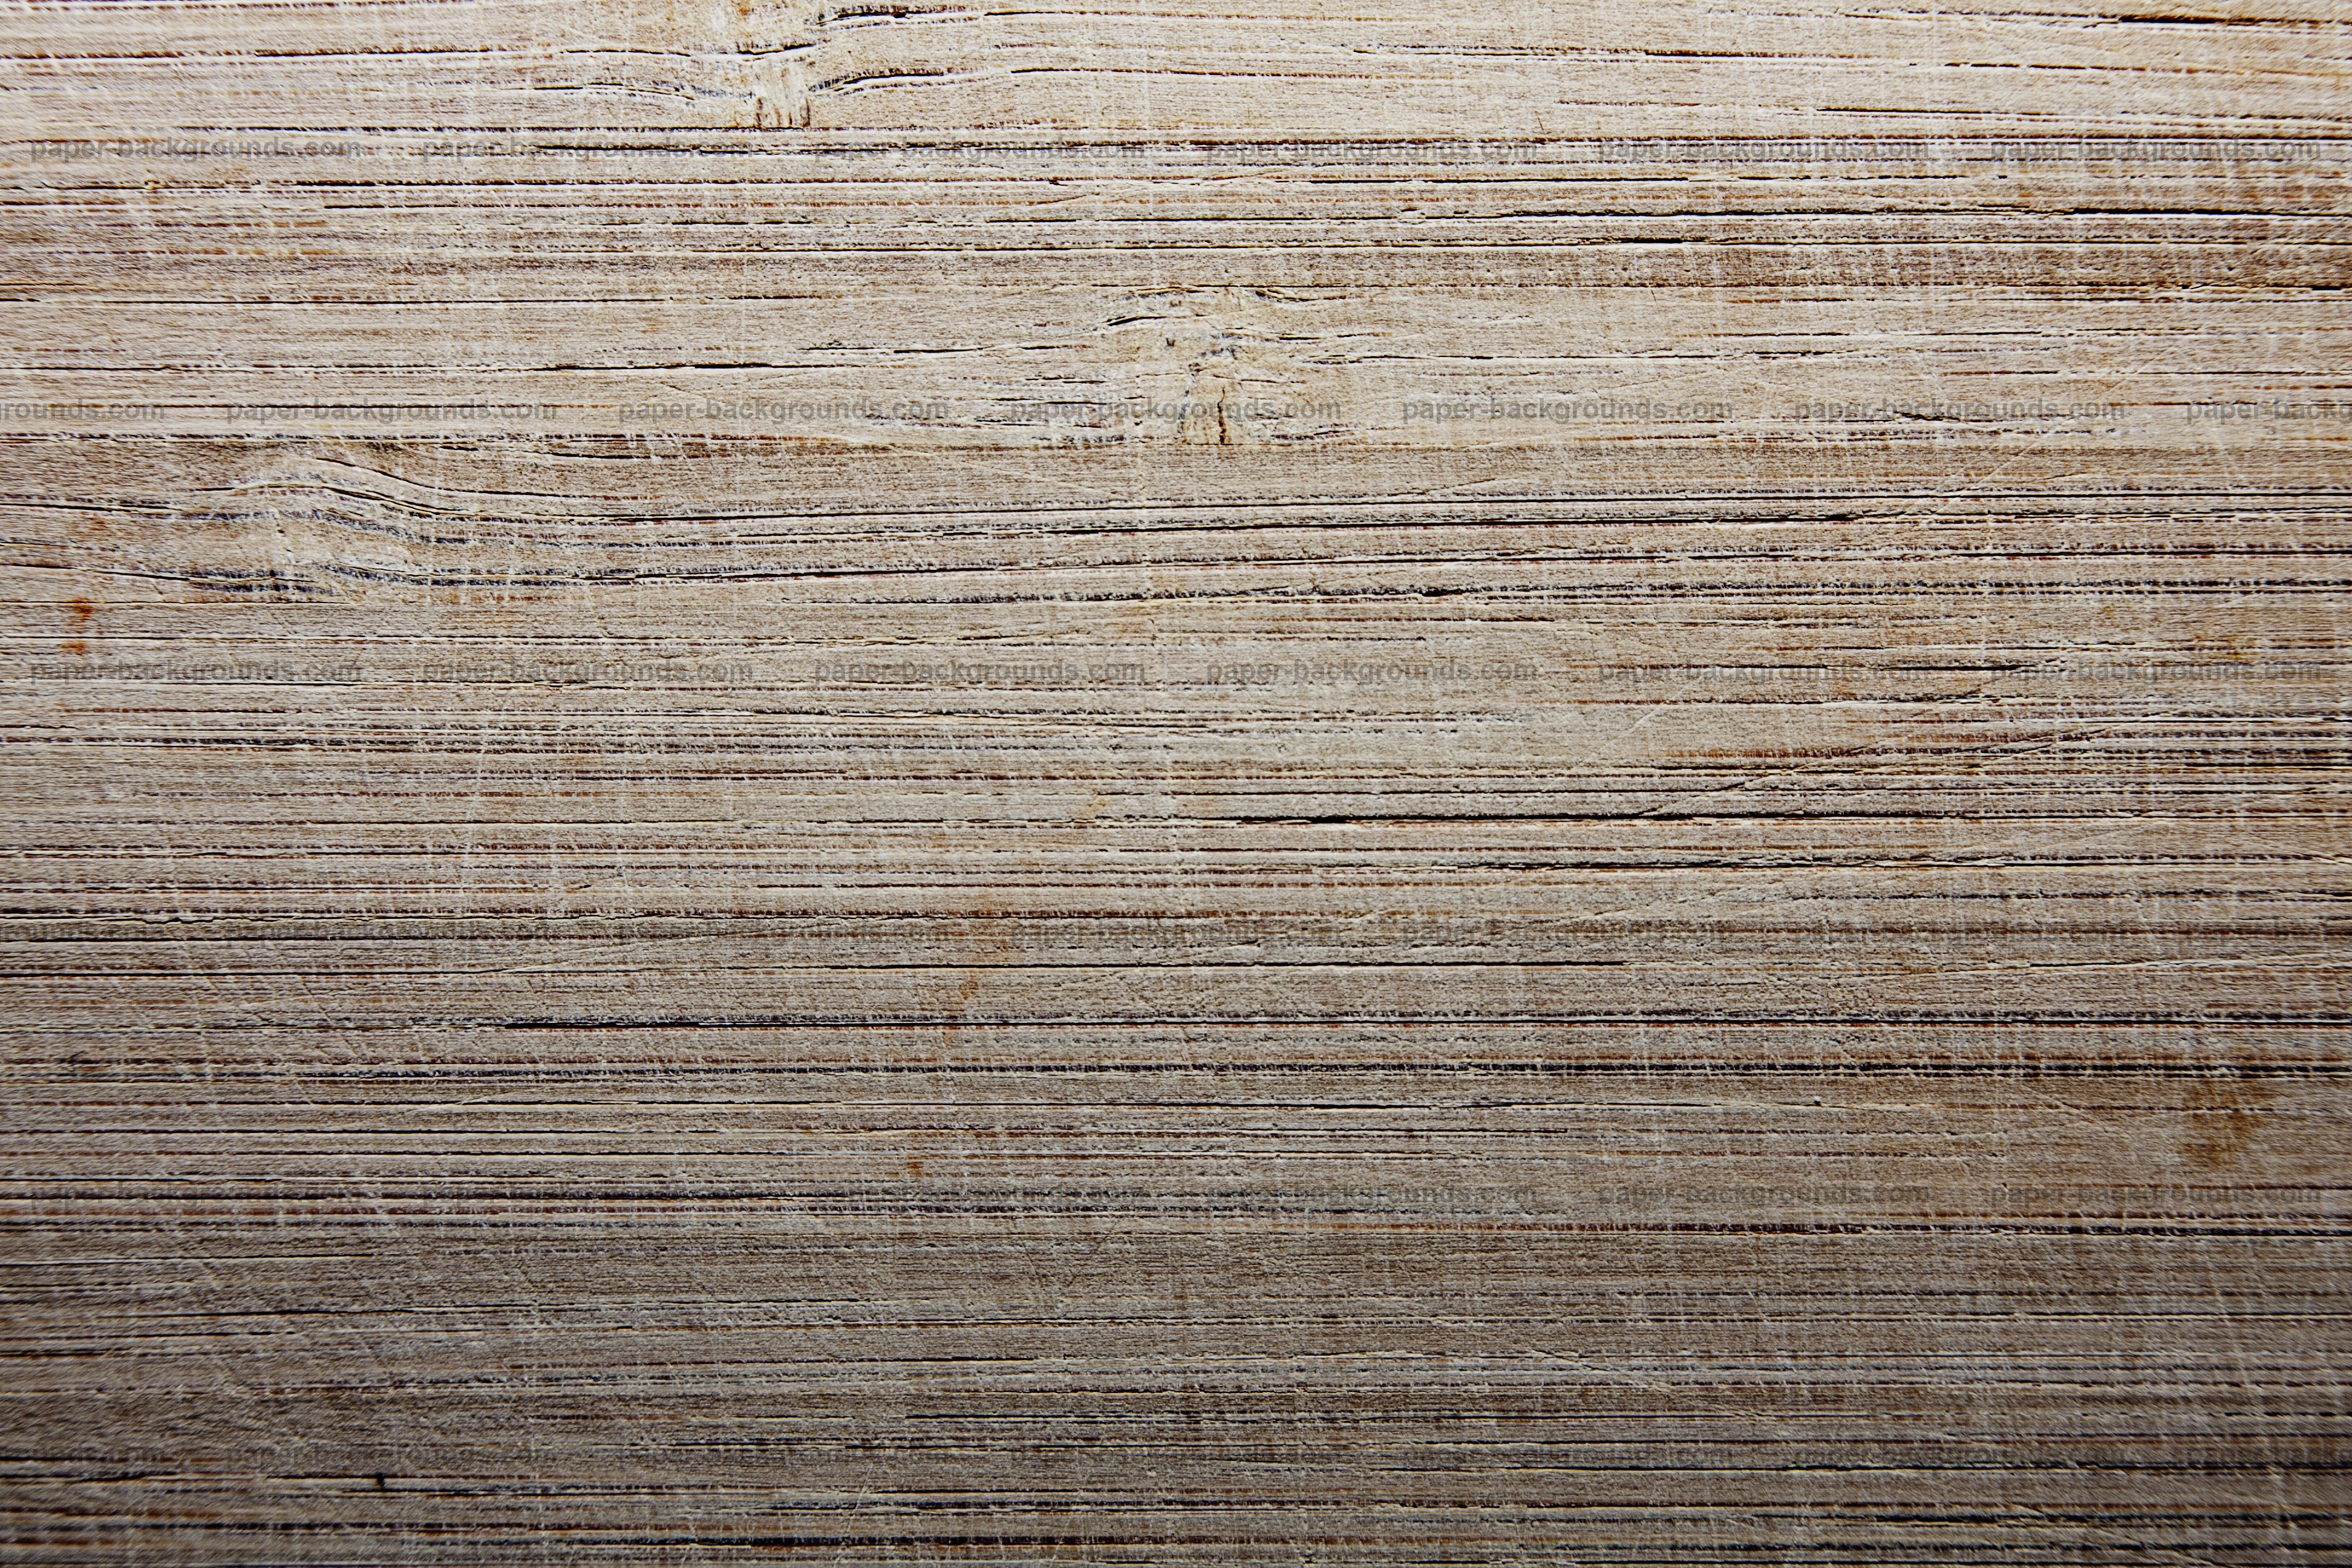 Paper Backgrounds | Old Wood Texture Background HD